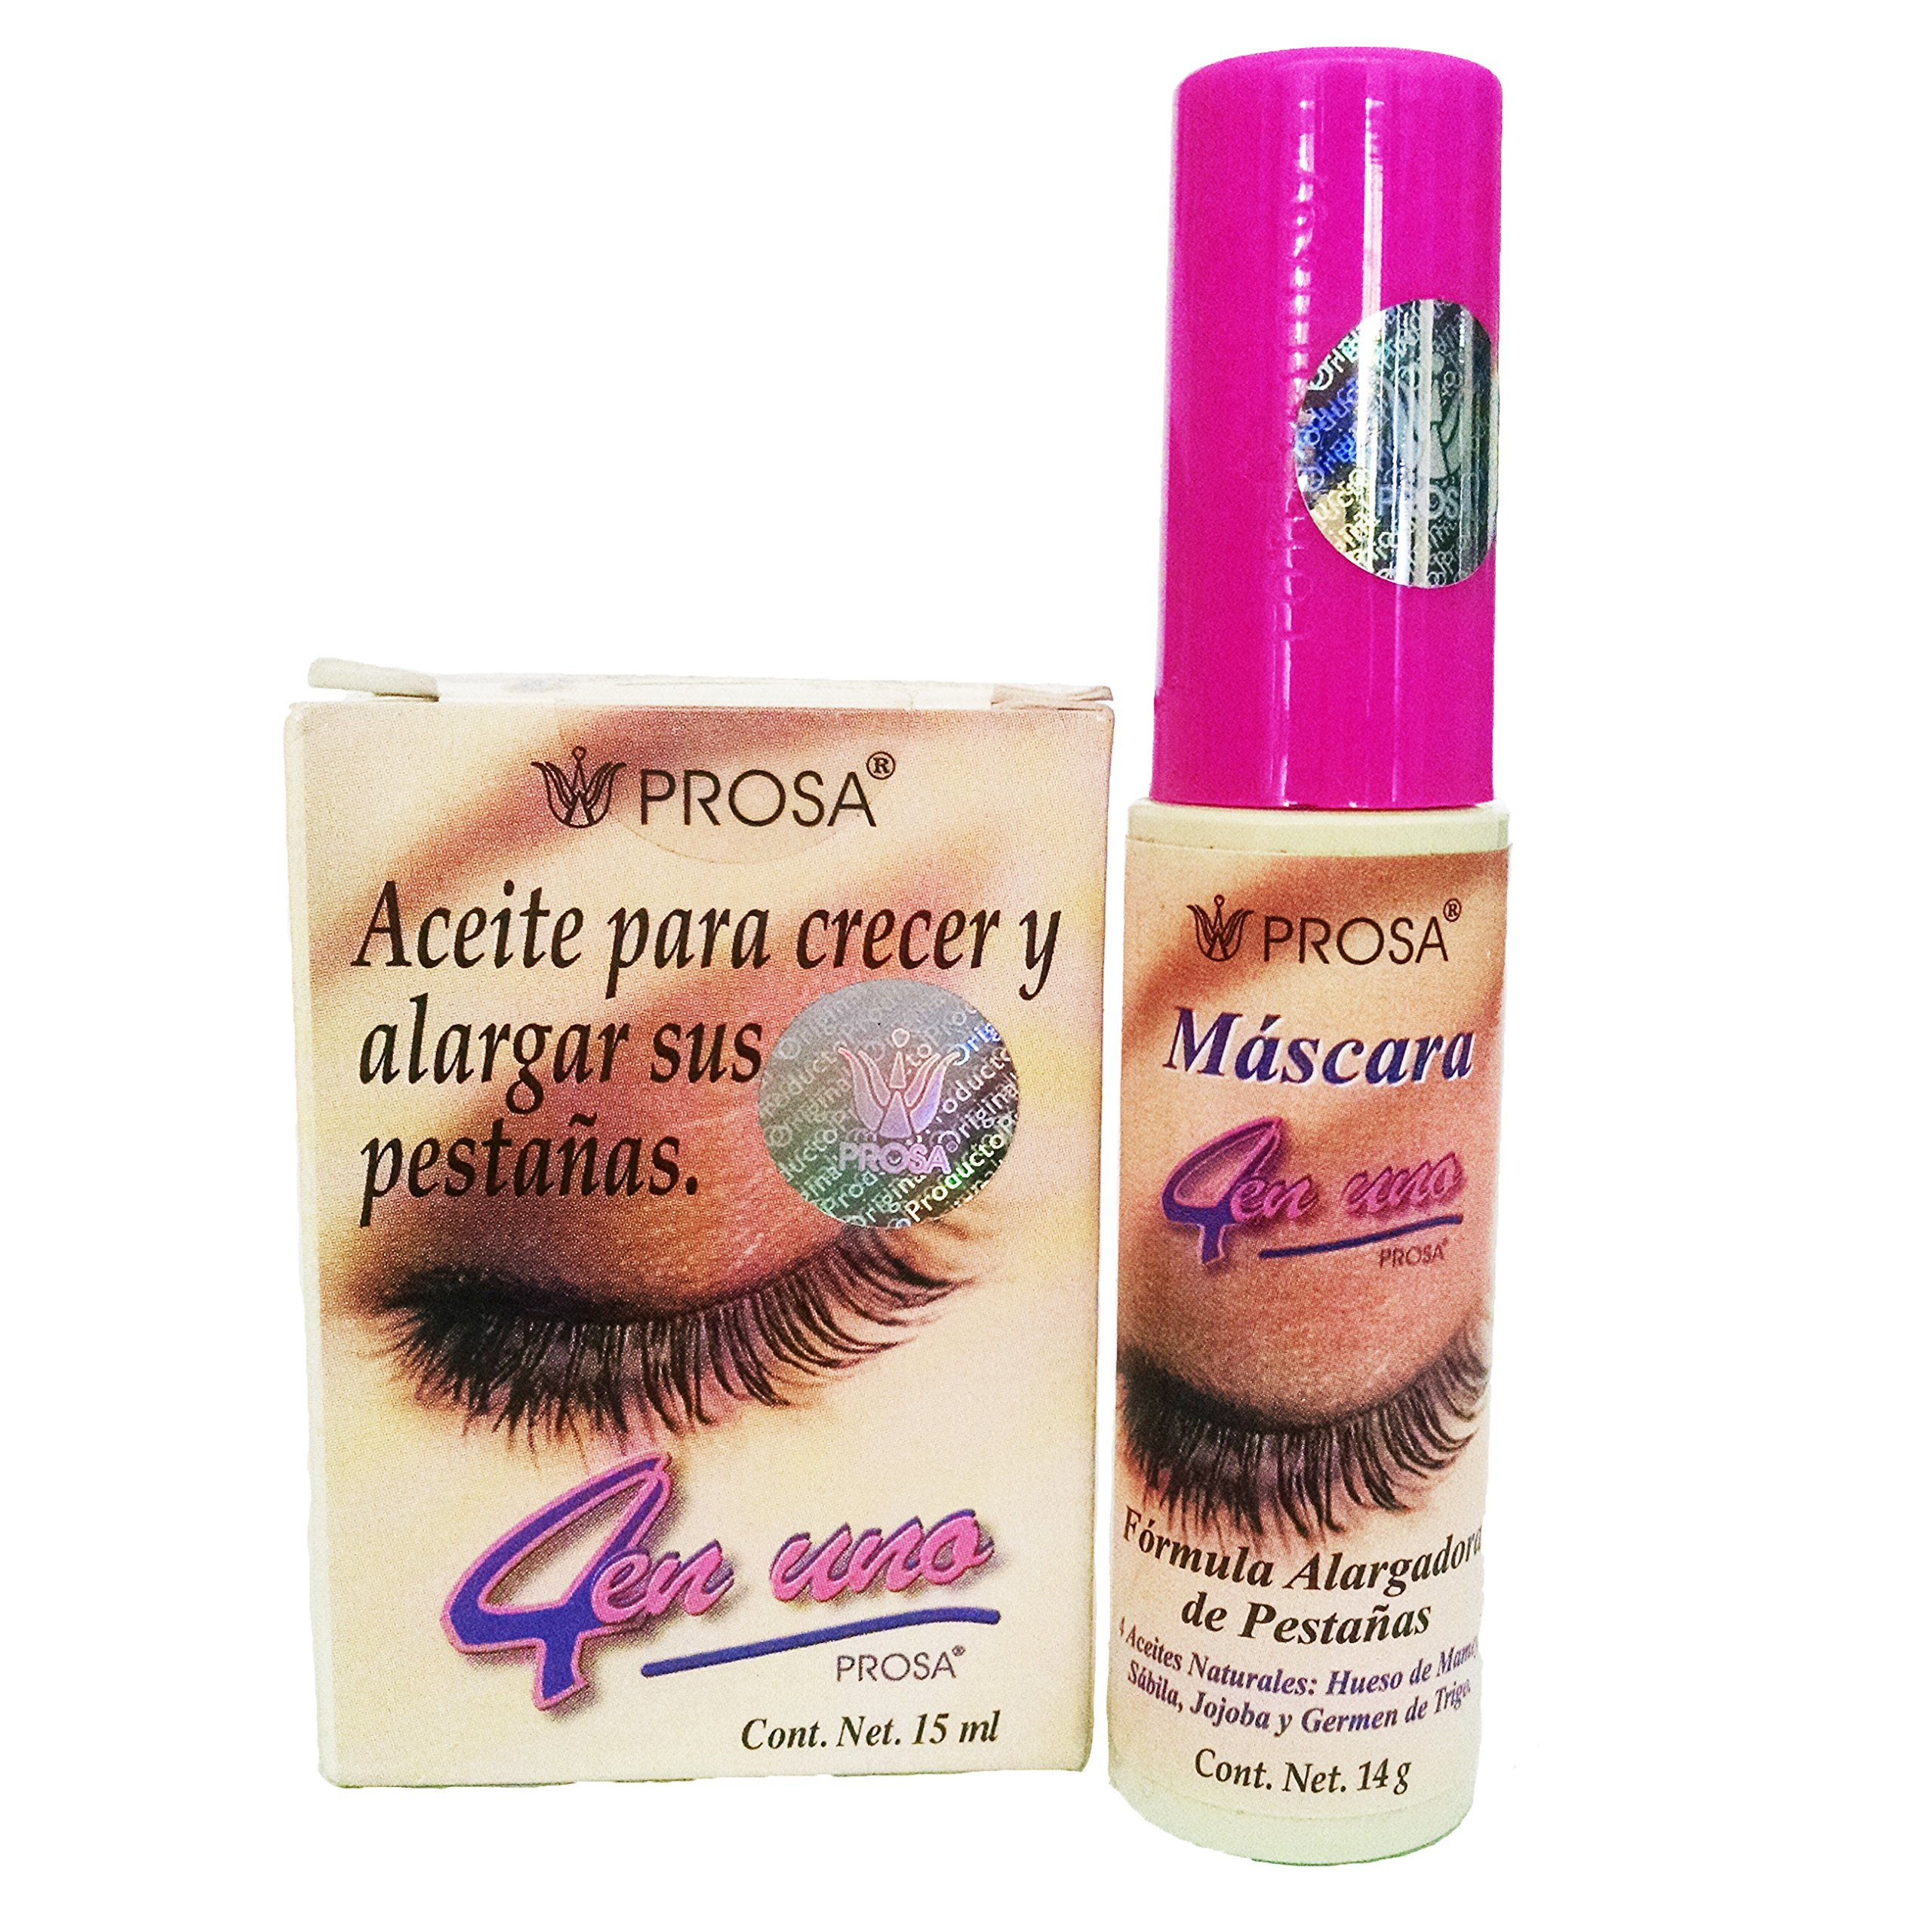 Combo Pack-Prosa Mascara For Enlarging Eyelashes 1 rimel con aceite de mamey oil Enlarging